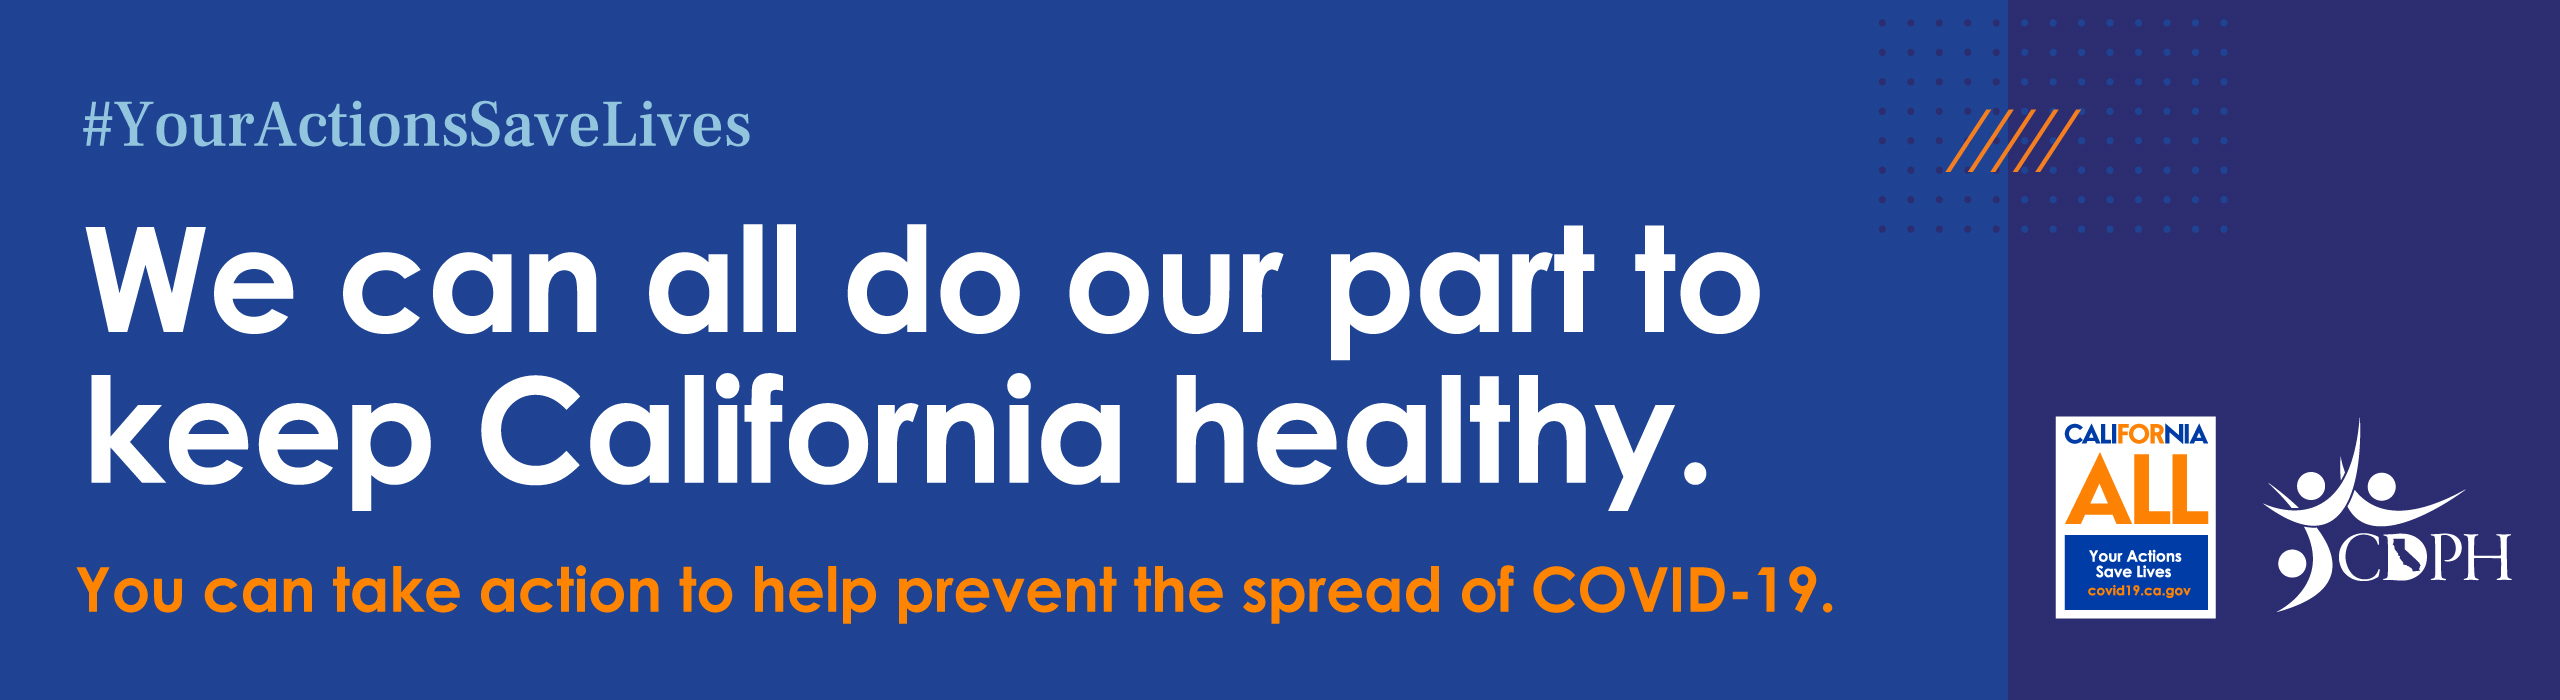 Do our part to keep California healthy